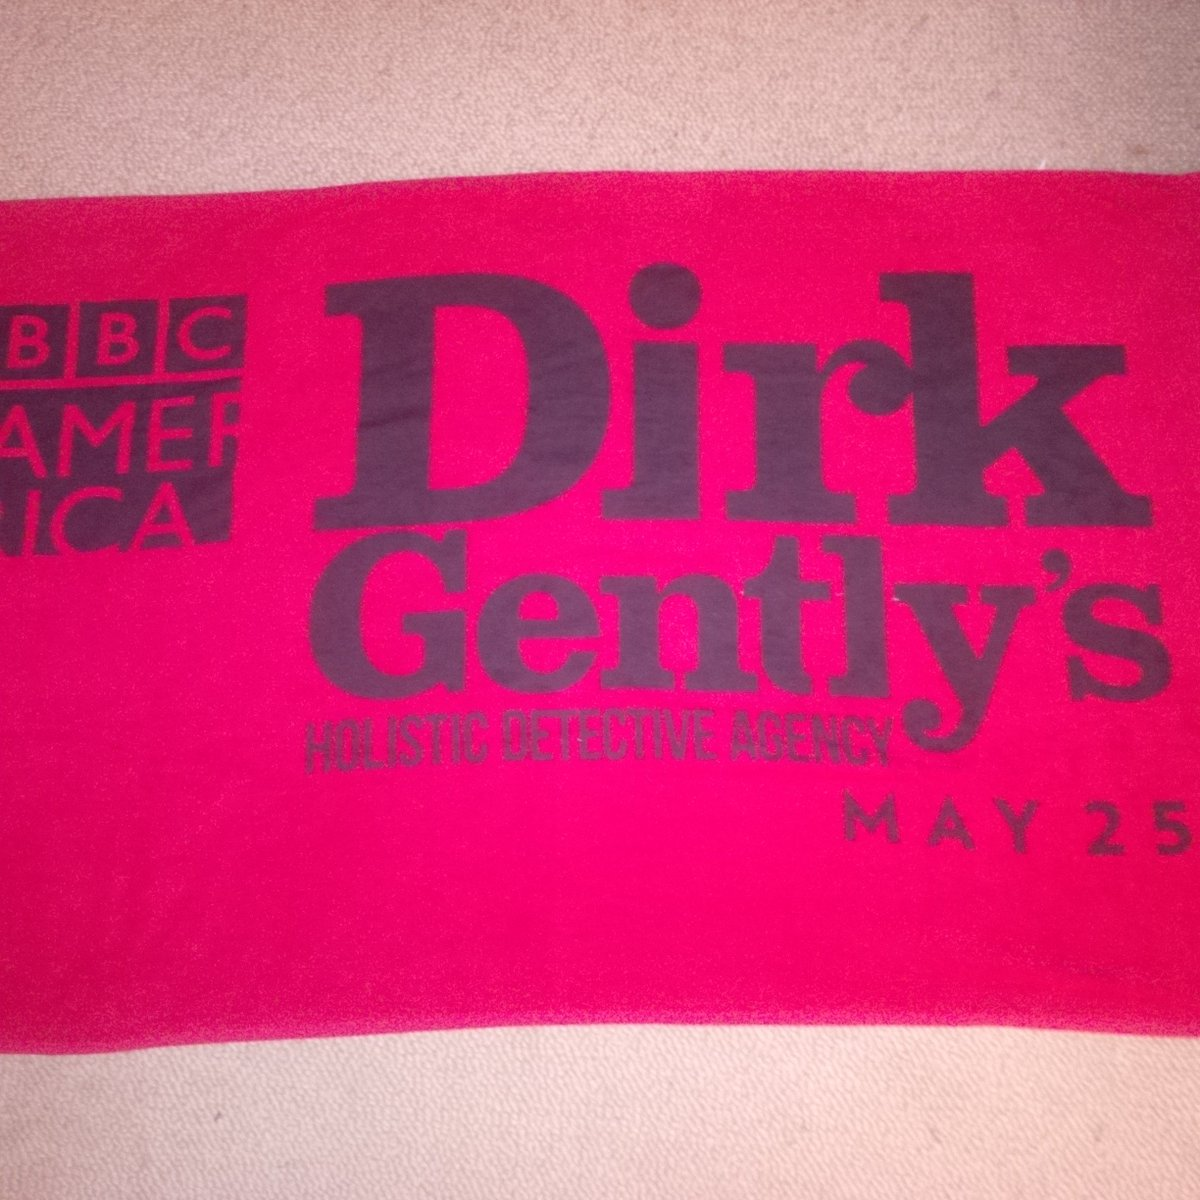 On this day of towel..@DirkGentlyBBCA #TowelDay https://t.co/BFfJXXkyMr